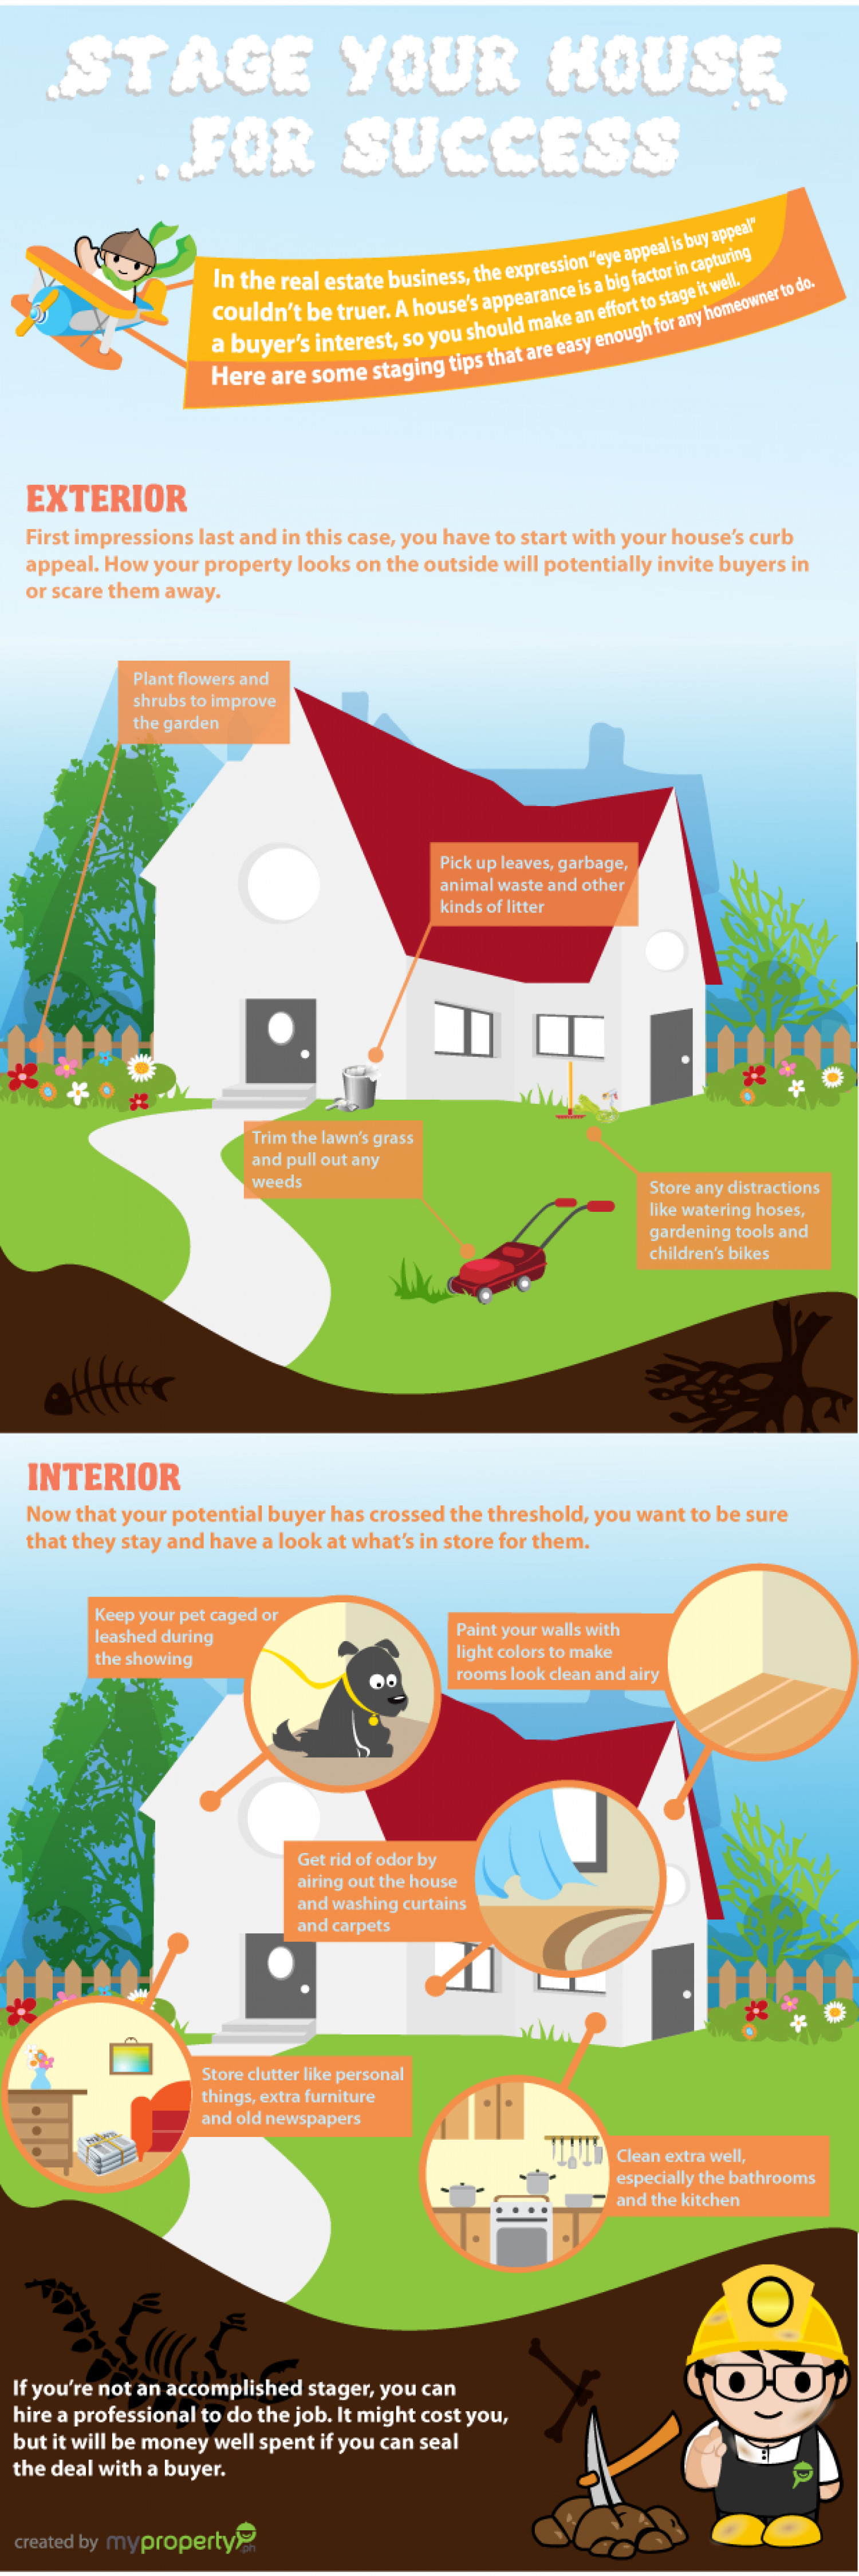 Stage Your House for Success Infographic